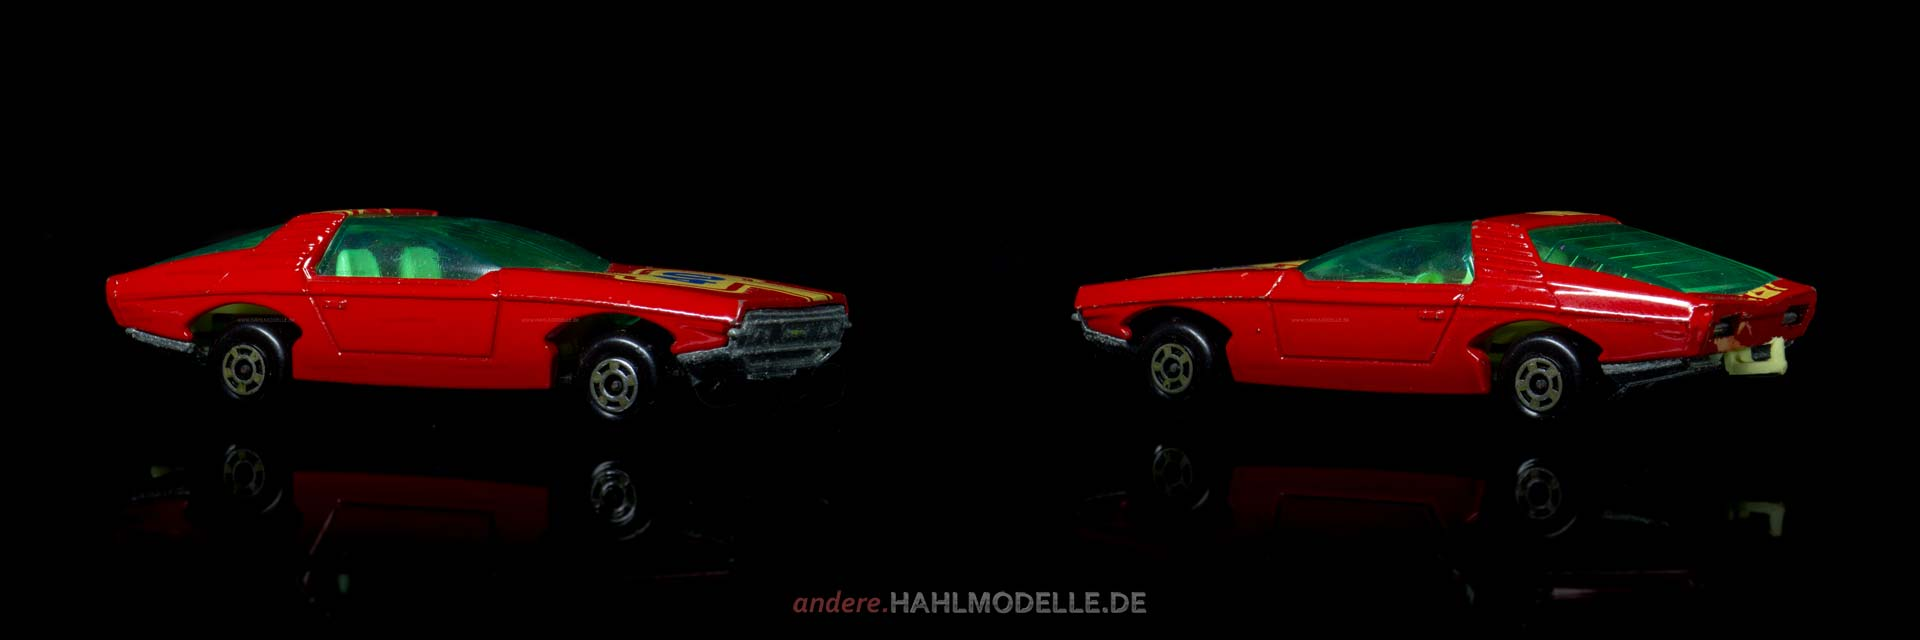 Vauxhall Guildman | Coupé | Lesney Products & Co. Ltd. | Matchbox Superfast Streakers | 1:64 | www.andere.hahlmodelle.de